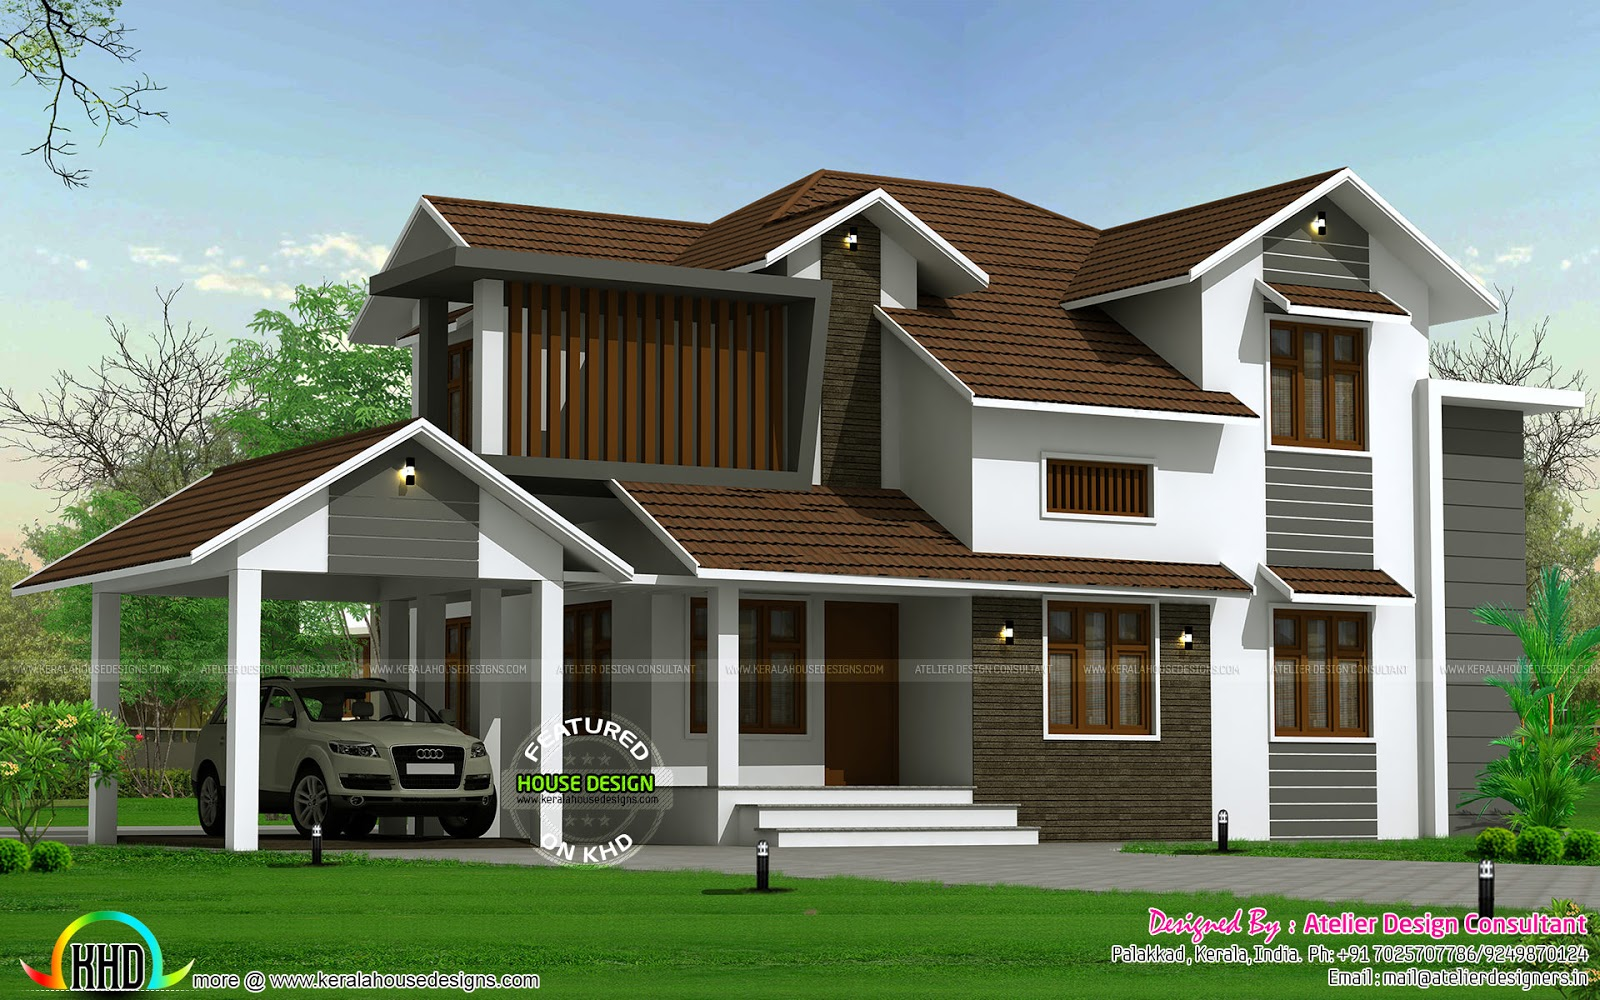 Traditional mix sloping roof home kerala home design and floor plans - Traditional houses attic ...